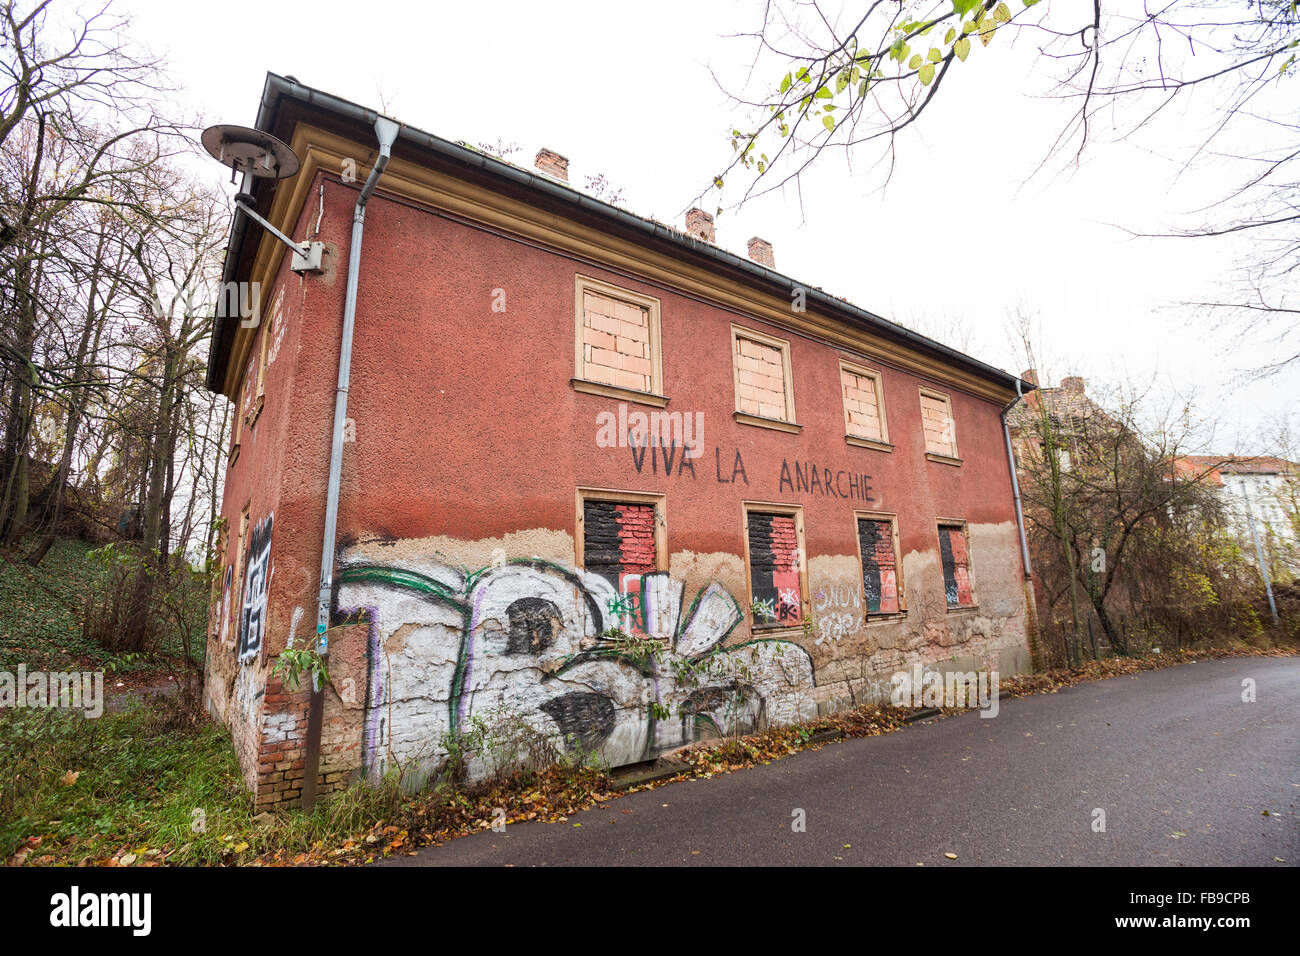 Ruins of an abandoned brick building with anarchist graffiti - Stock Image